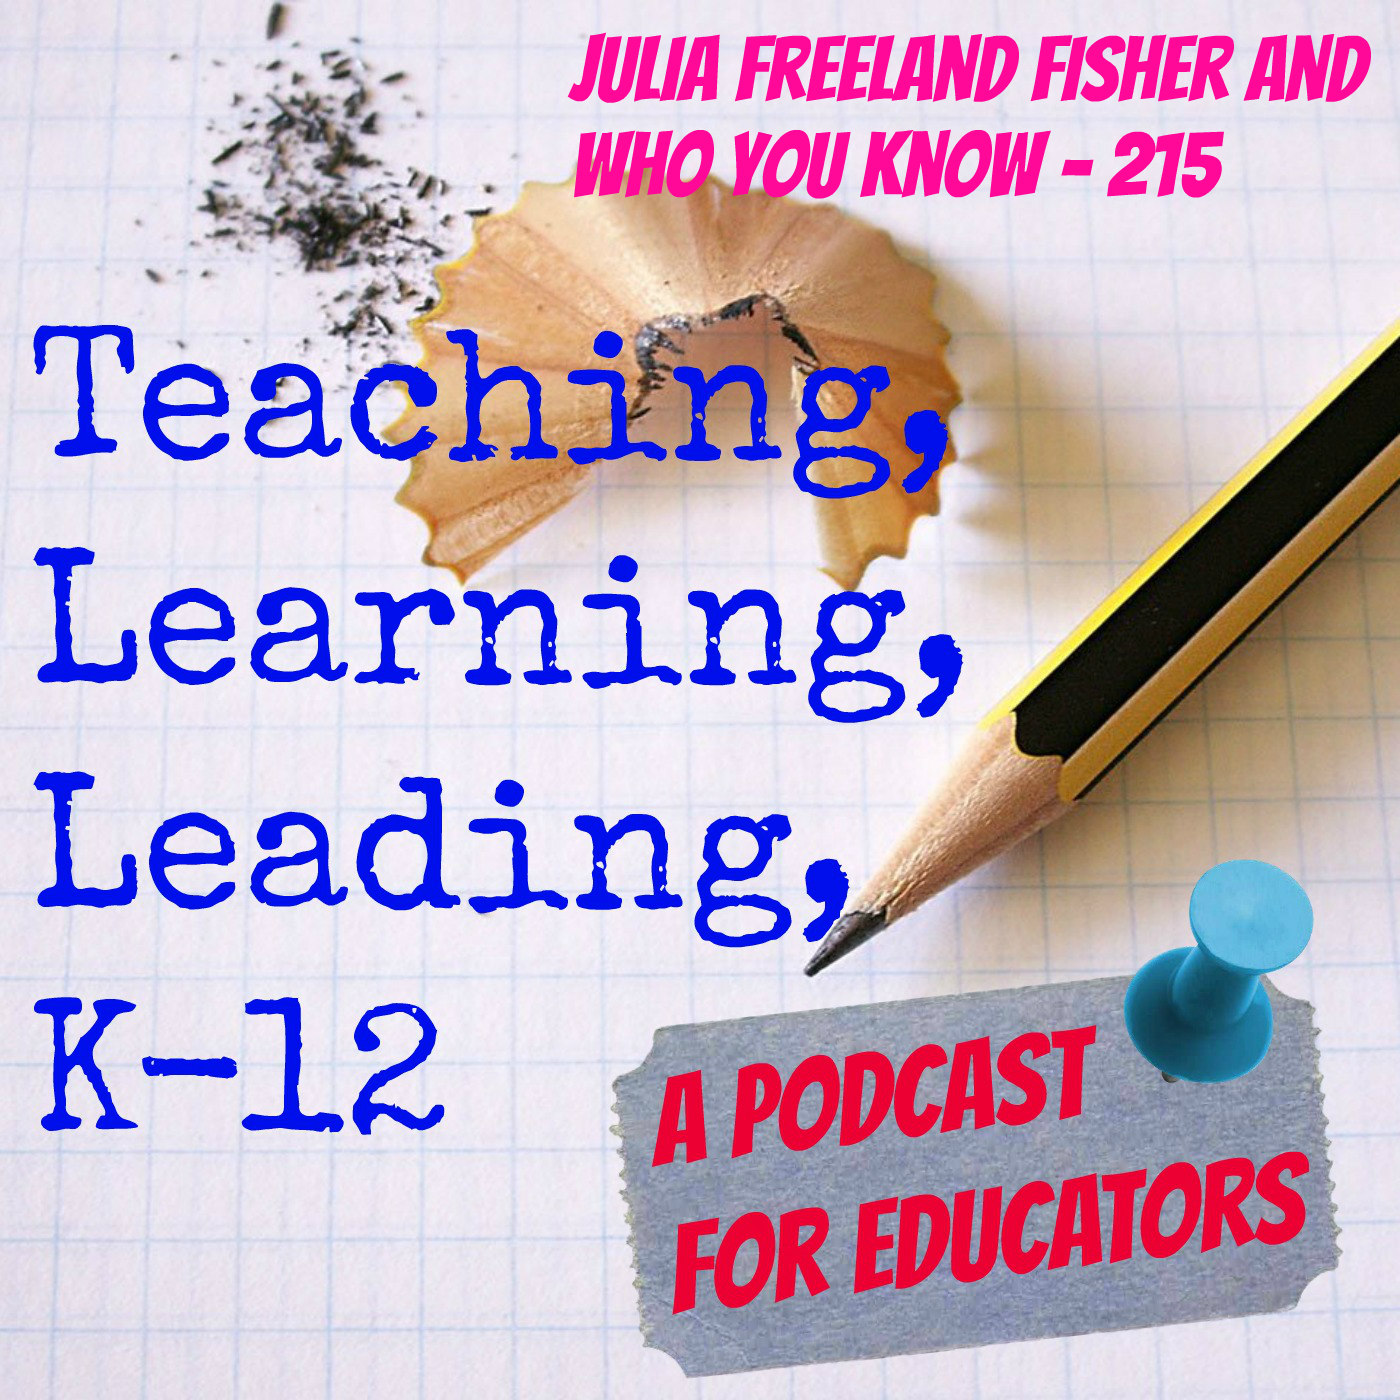 Julia Freeland Fisher and Who You Know -215